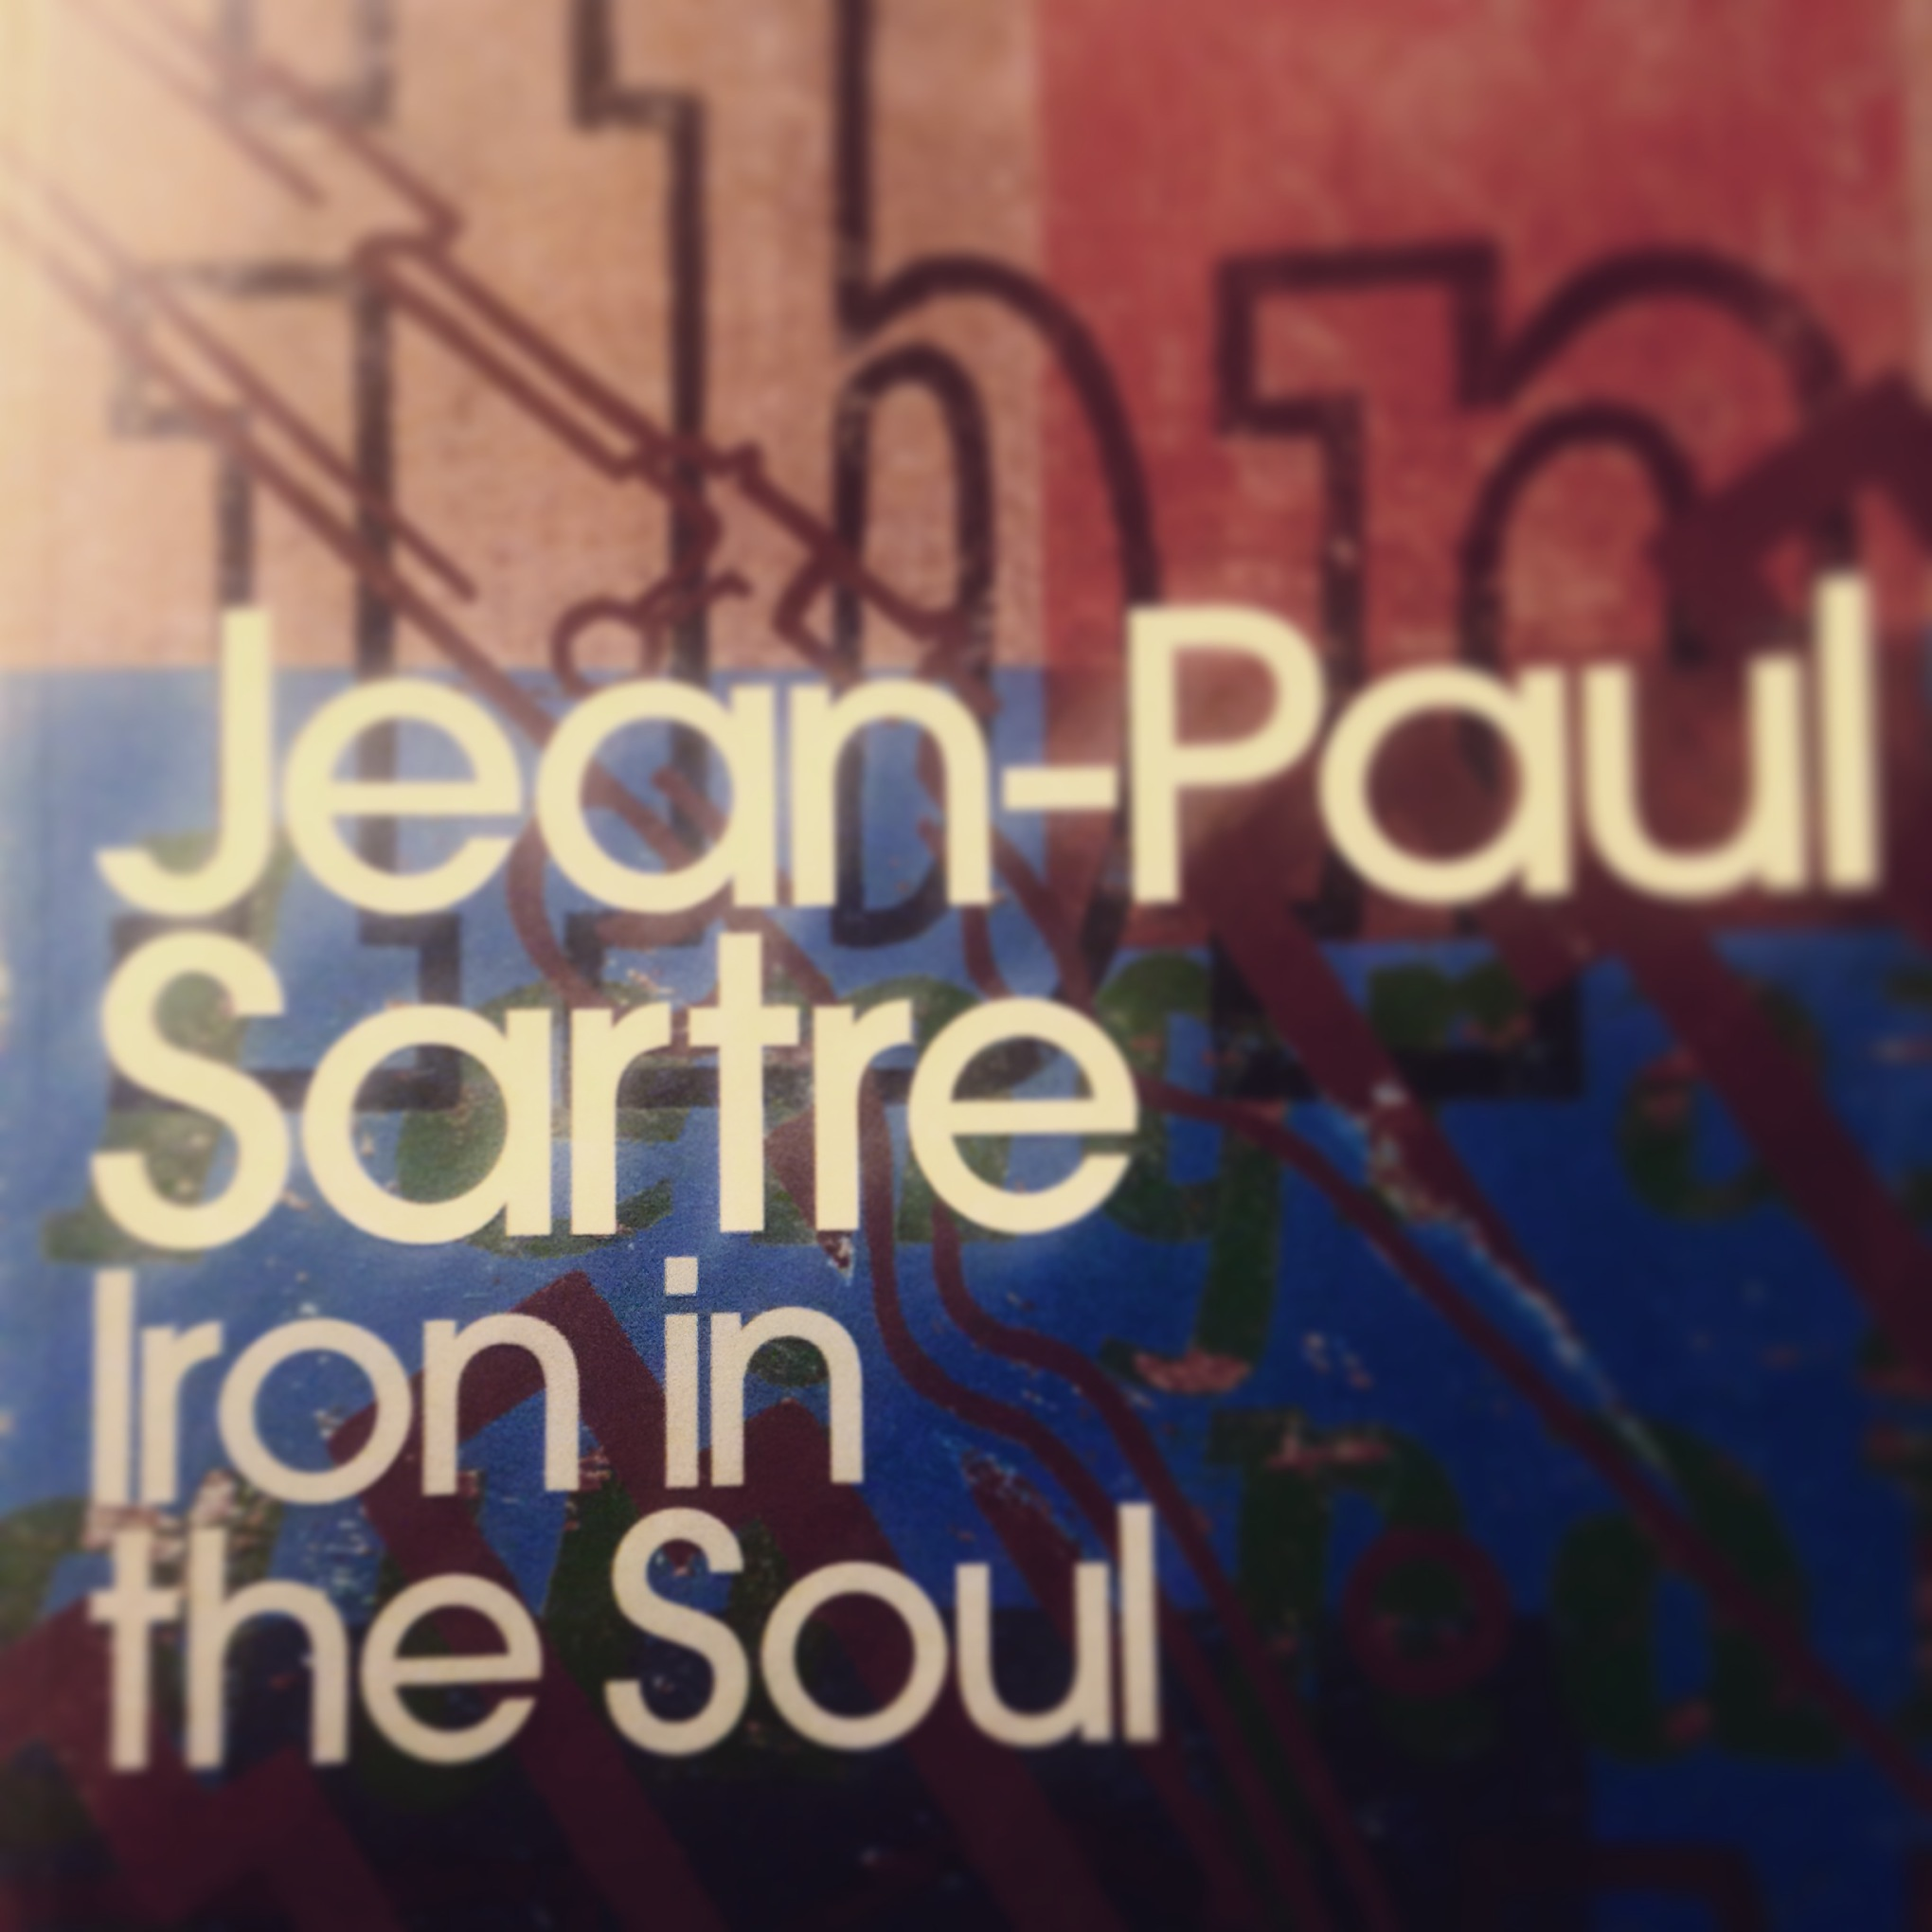 Jean-Paul Sartre - Iron in the Soul